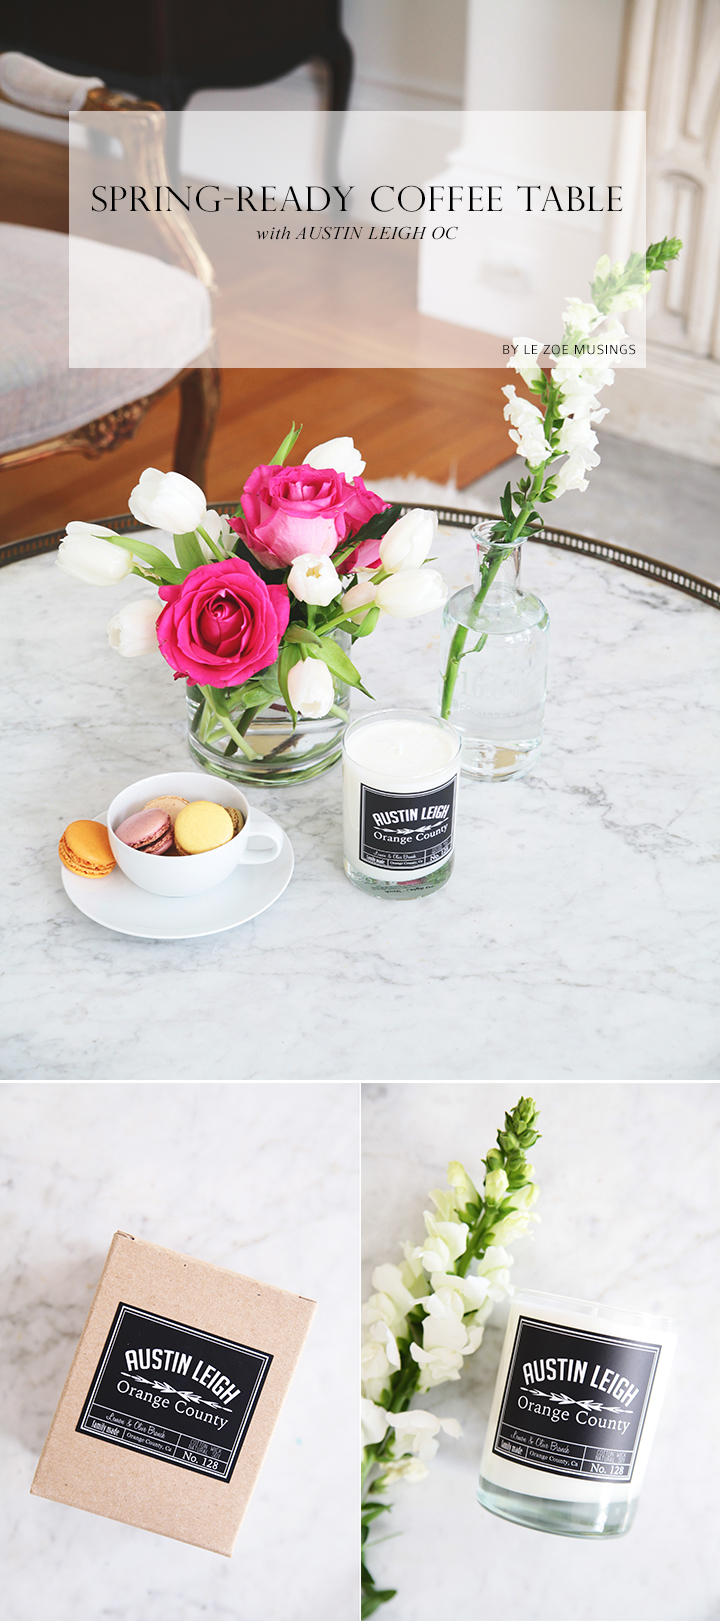 Spring-Ready Coffe Table by Le Zoe Musings